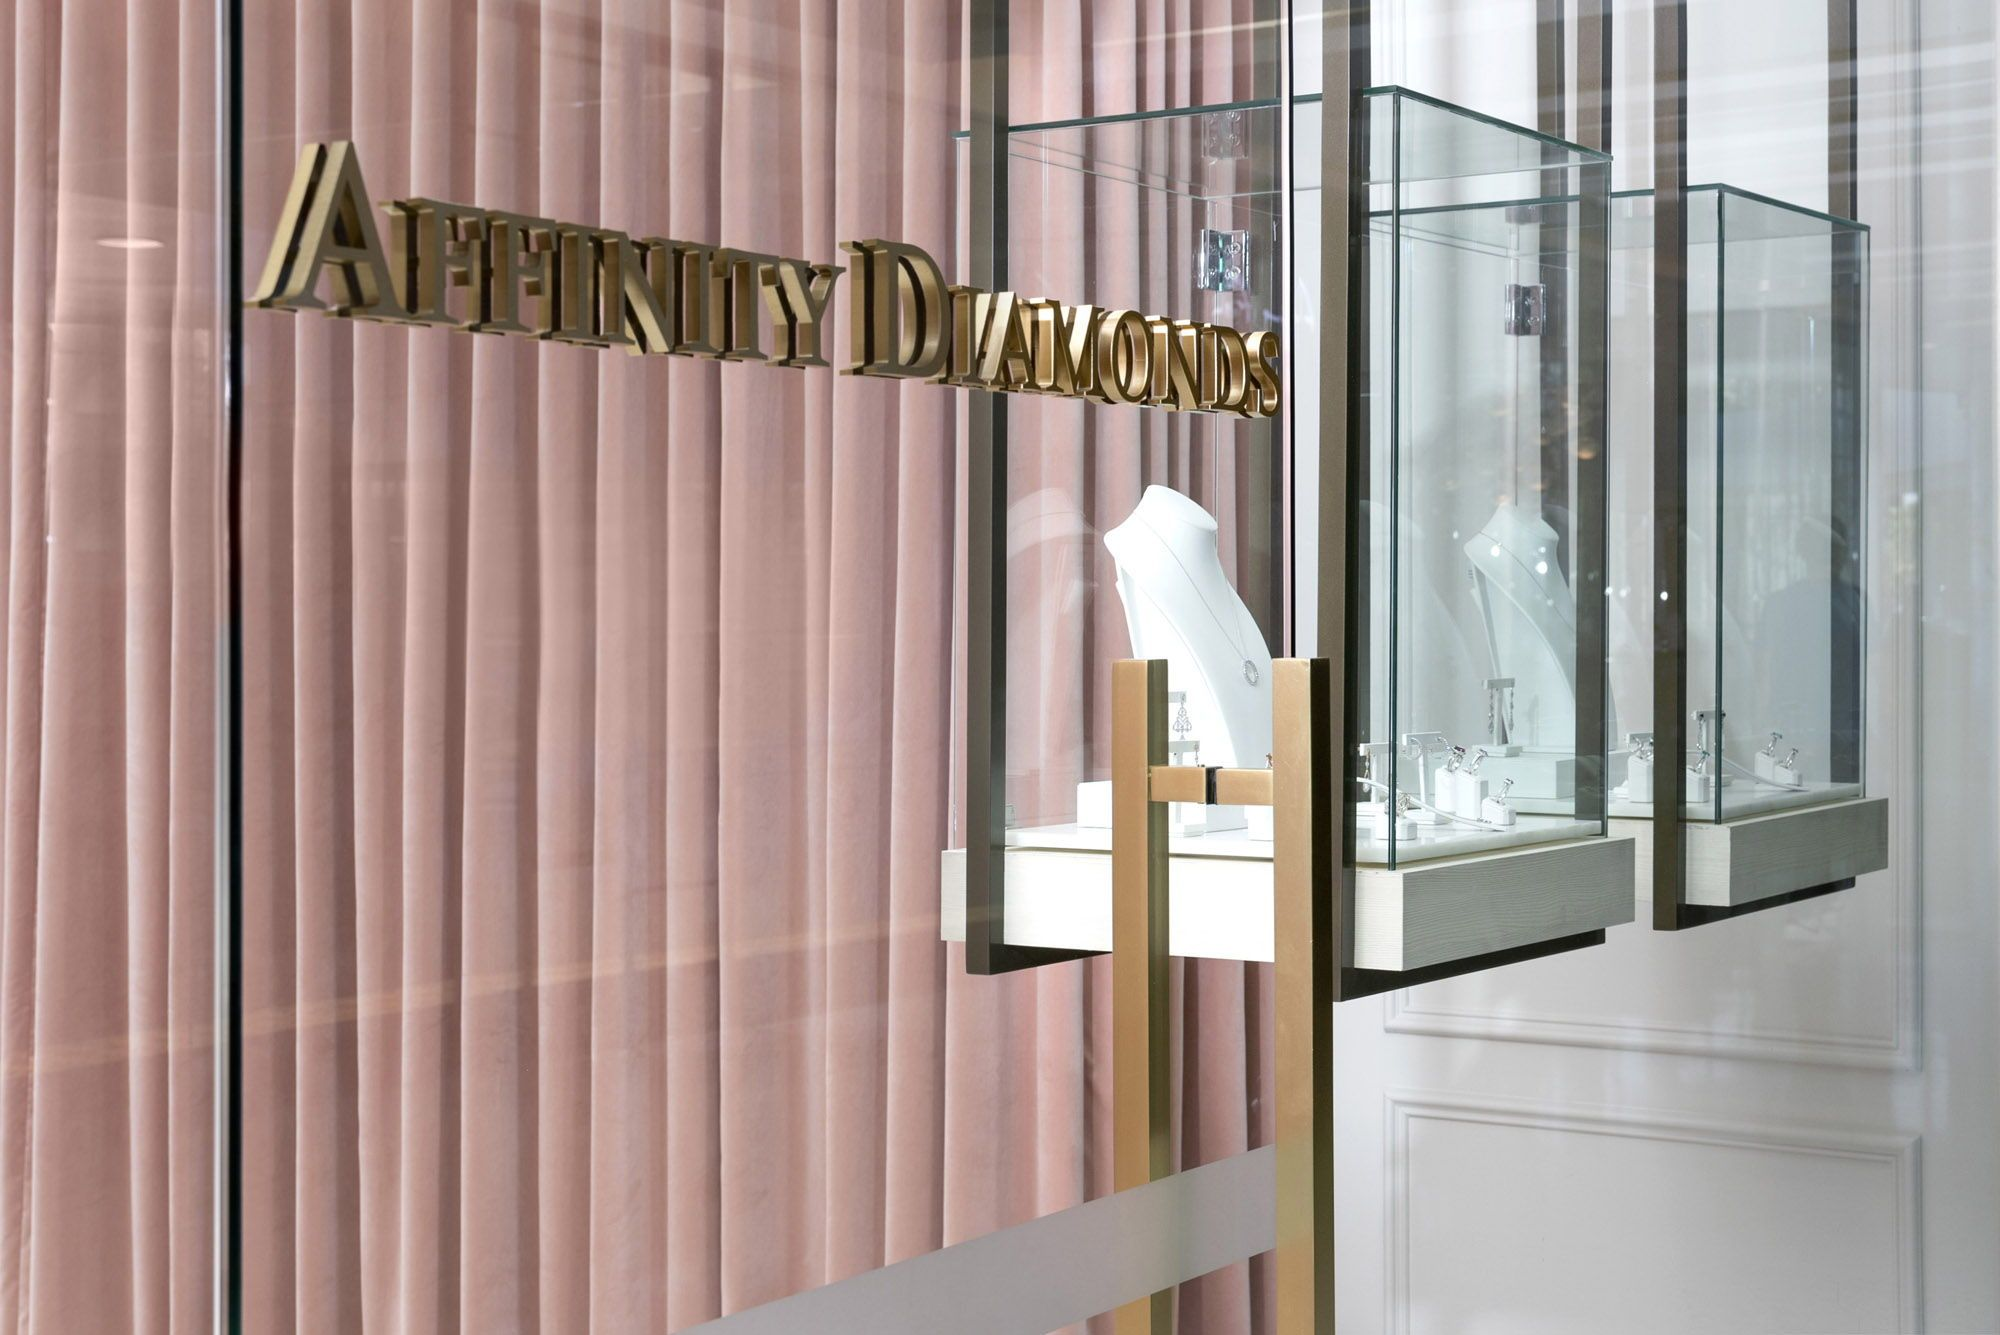 Most Popular Engagement Ring Jewellers In Sydney - Affinity Diamonds